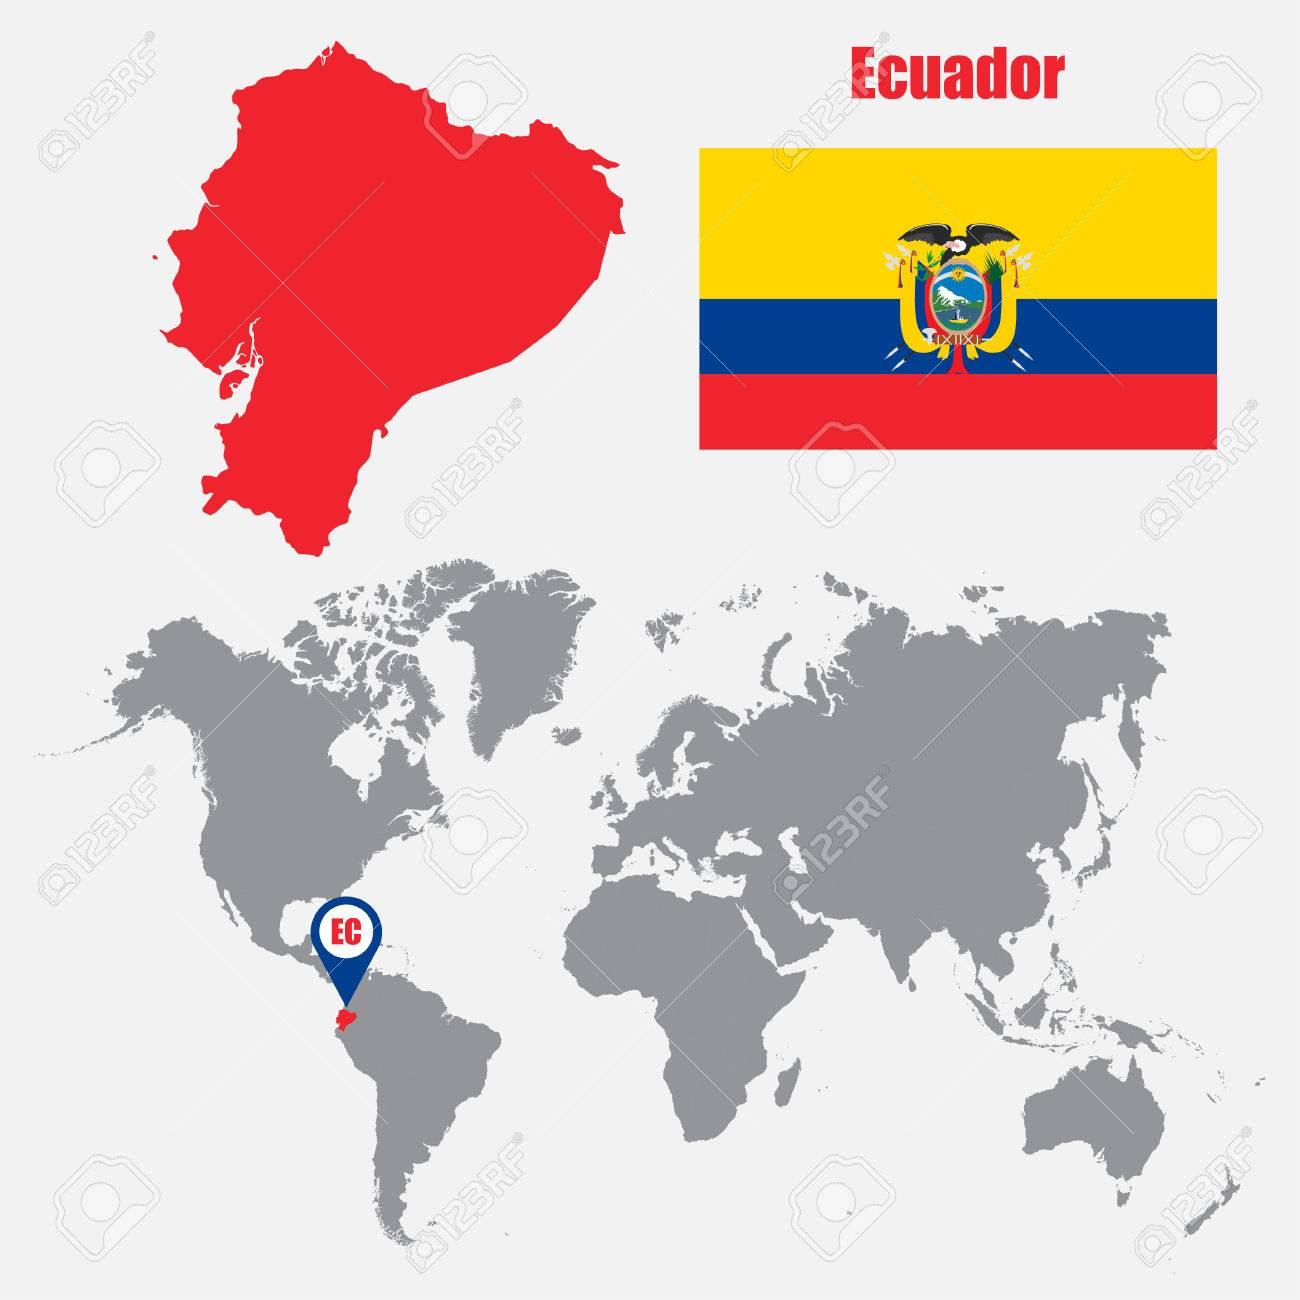 Ecuador Map On A World Map With Flag And Map Pointer Vector Royalty Free Cliparts Vectors And Stock Illustration Image 62045534